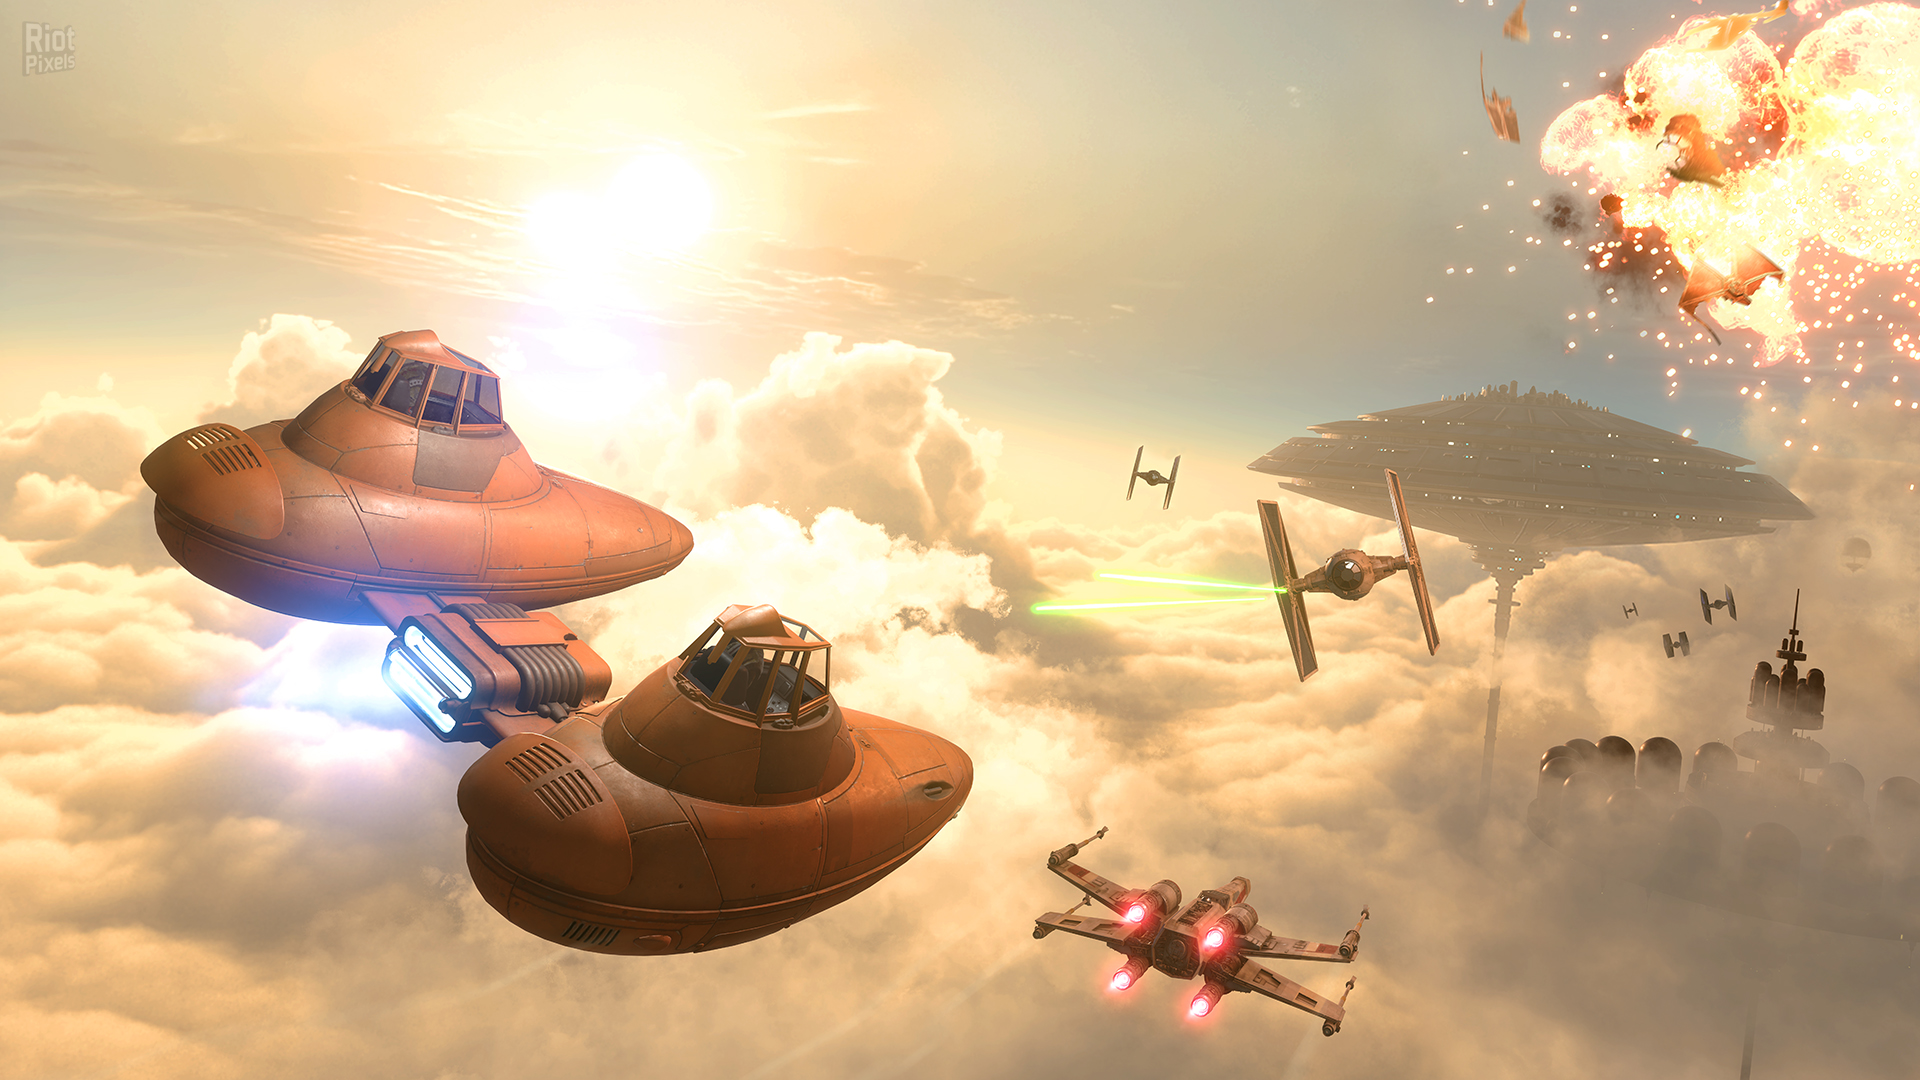 Star Wars Battlefront Bespin Game Screenshots At Riot Pixels Images